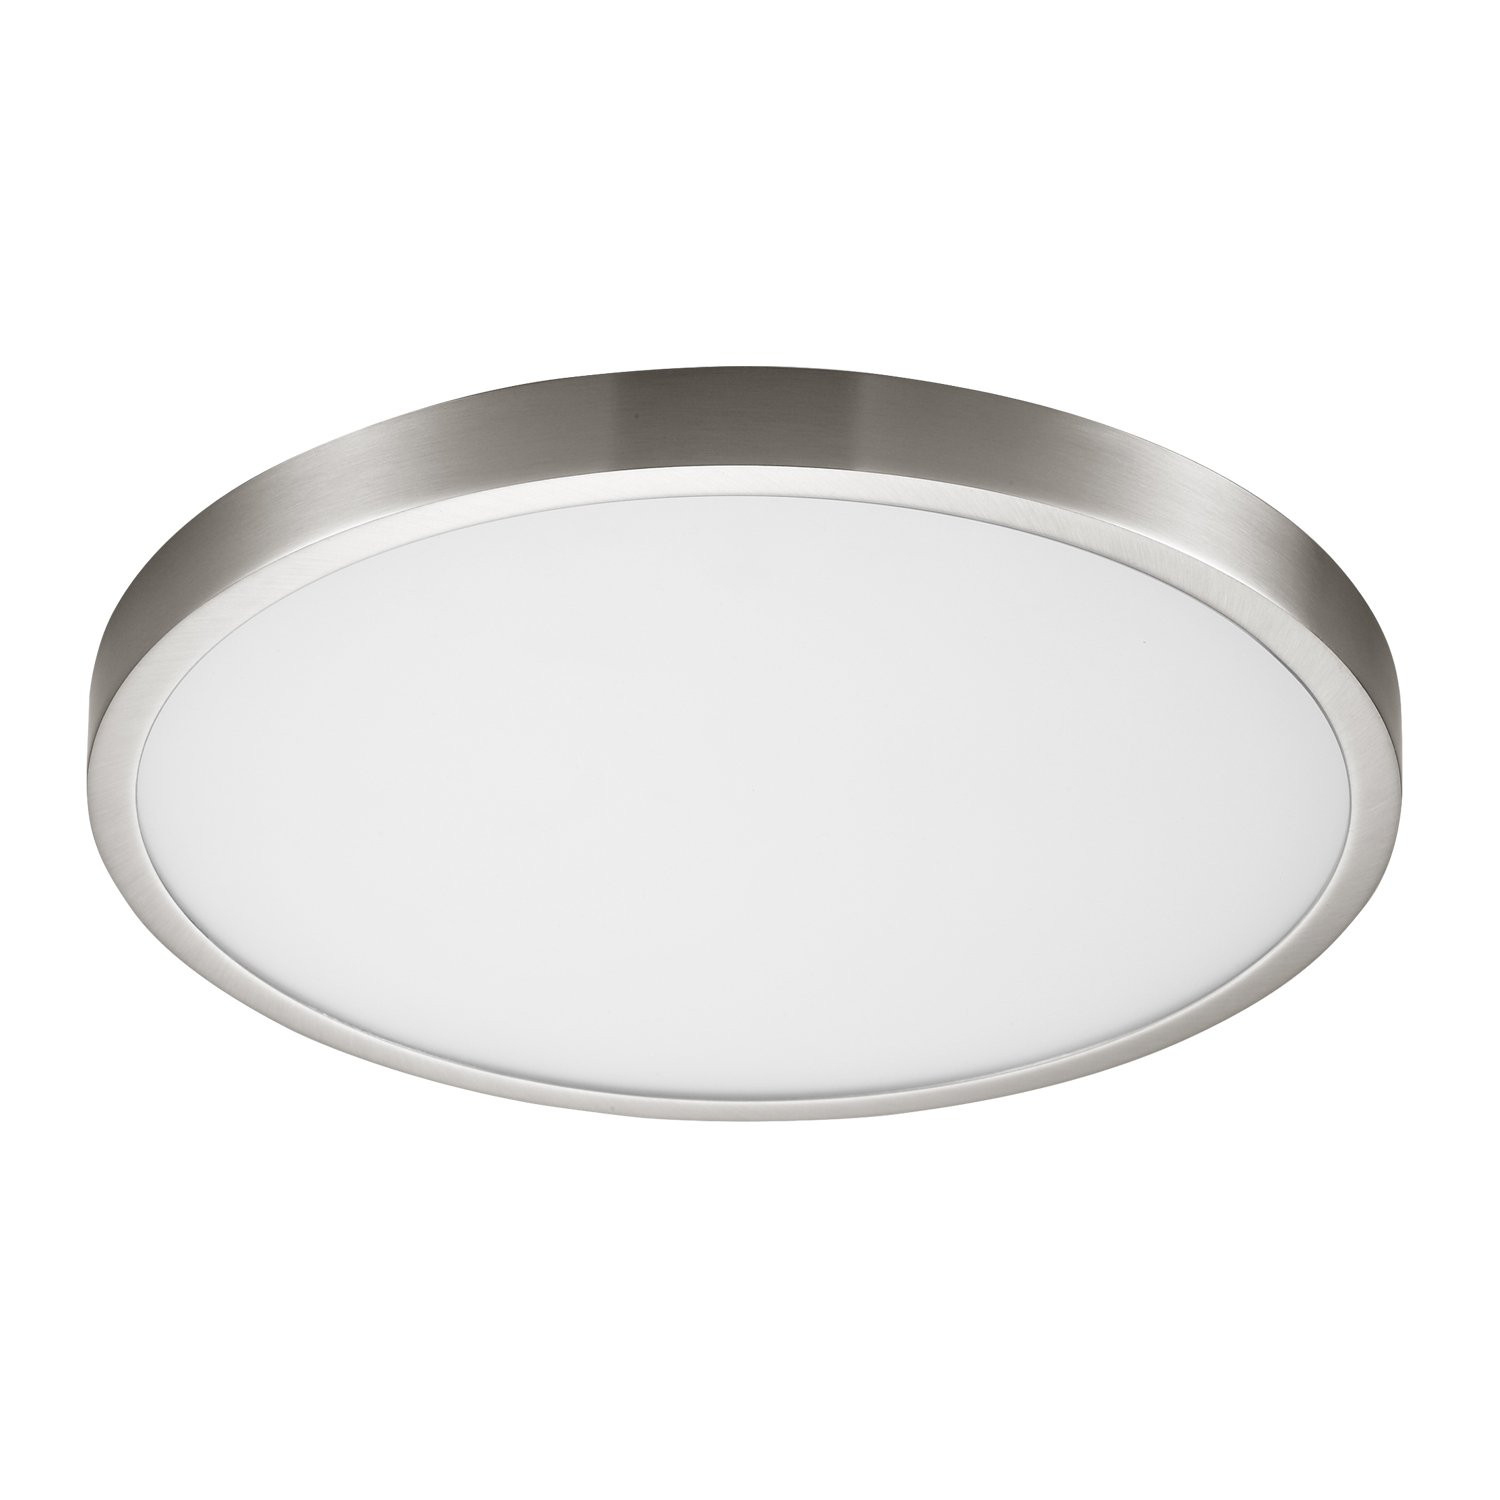 6500K Dimmable LED Round Ceiling